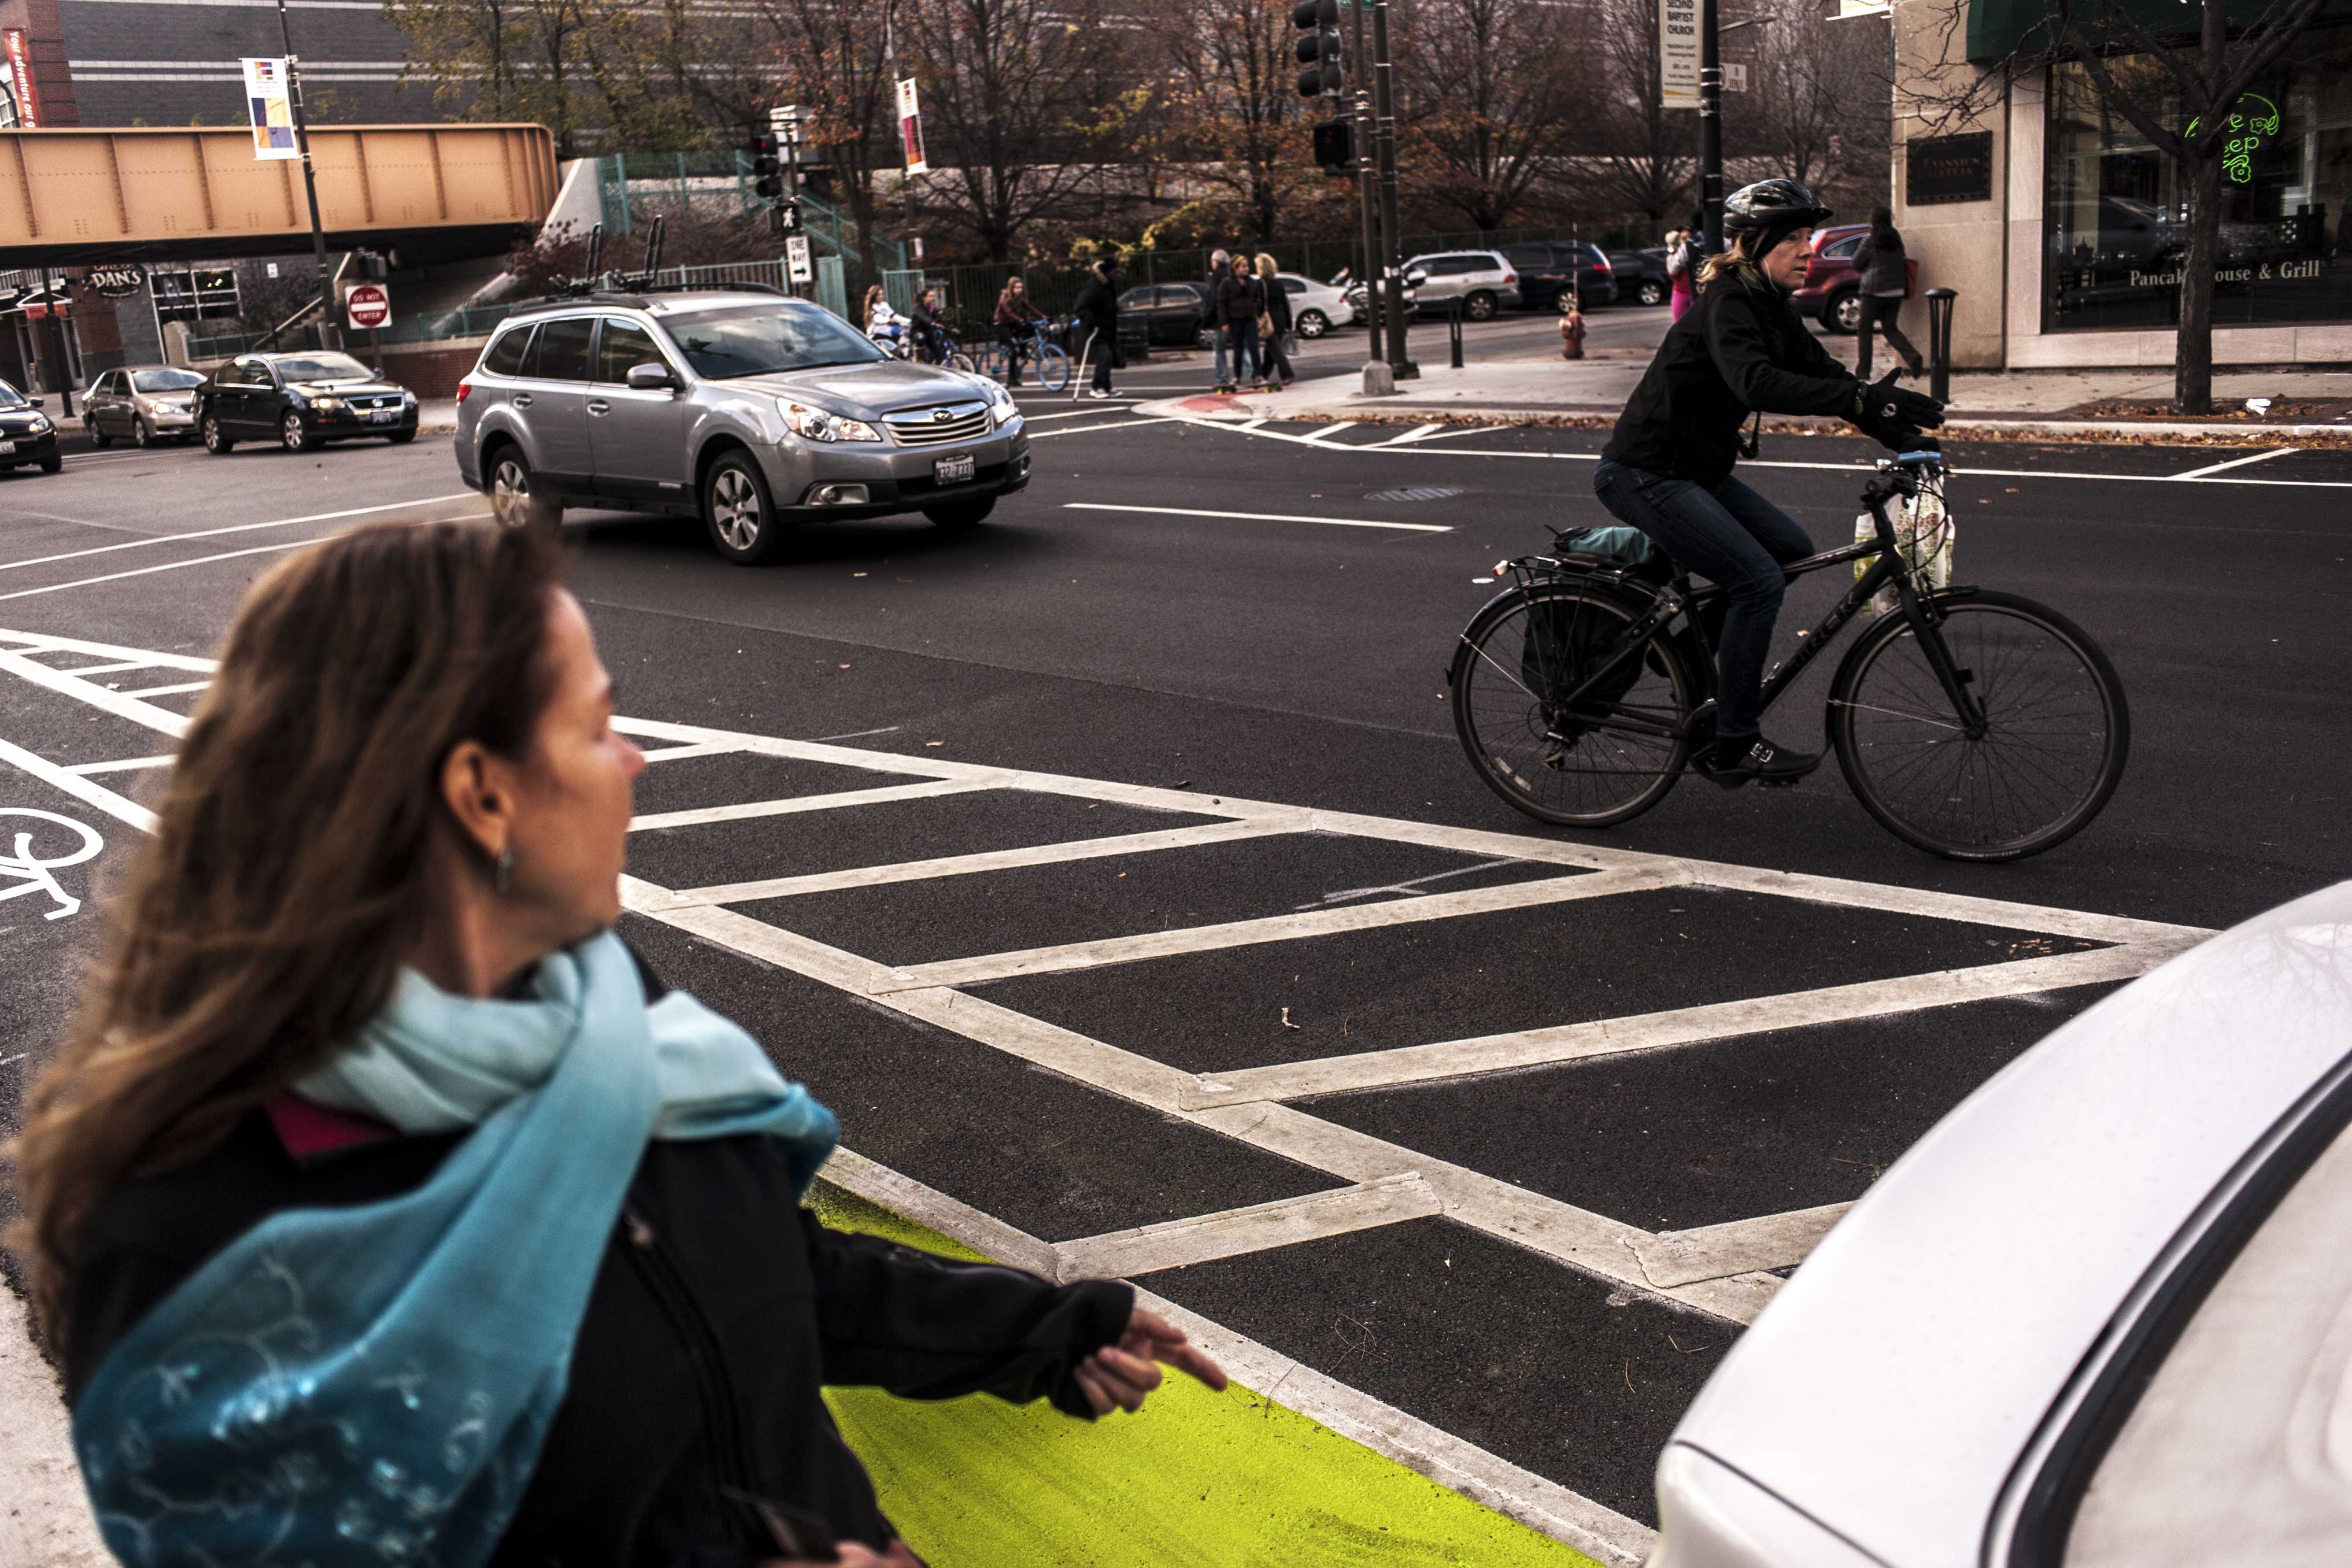 Evanston resident Nancy Floy (left) watches a cyclist veer into traffic to avoid hitting Floy's car, which was parked in a bike lane Sunday. Floy complained that the new lane made it harder for her to park illegally and said she worried that doors of cars parked legally would pose a danger to cyclists.